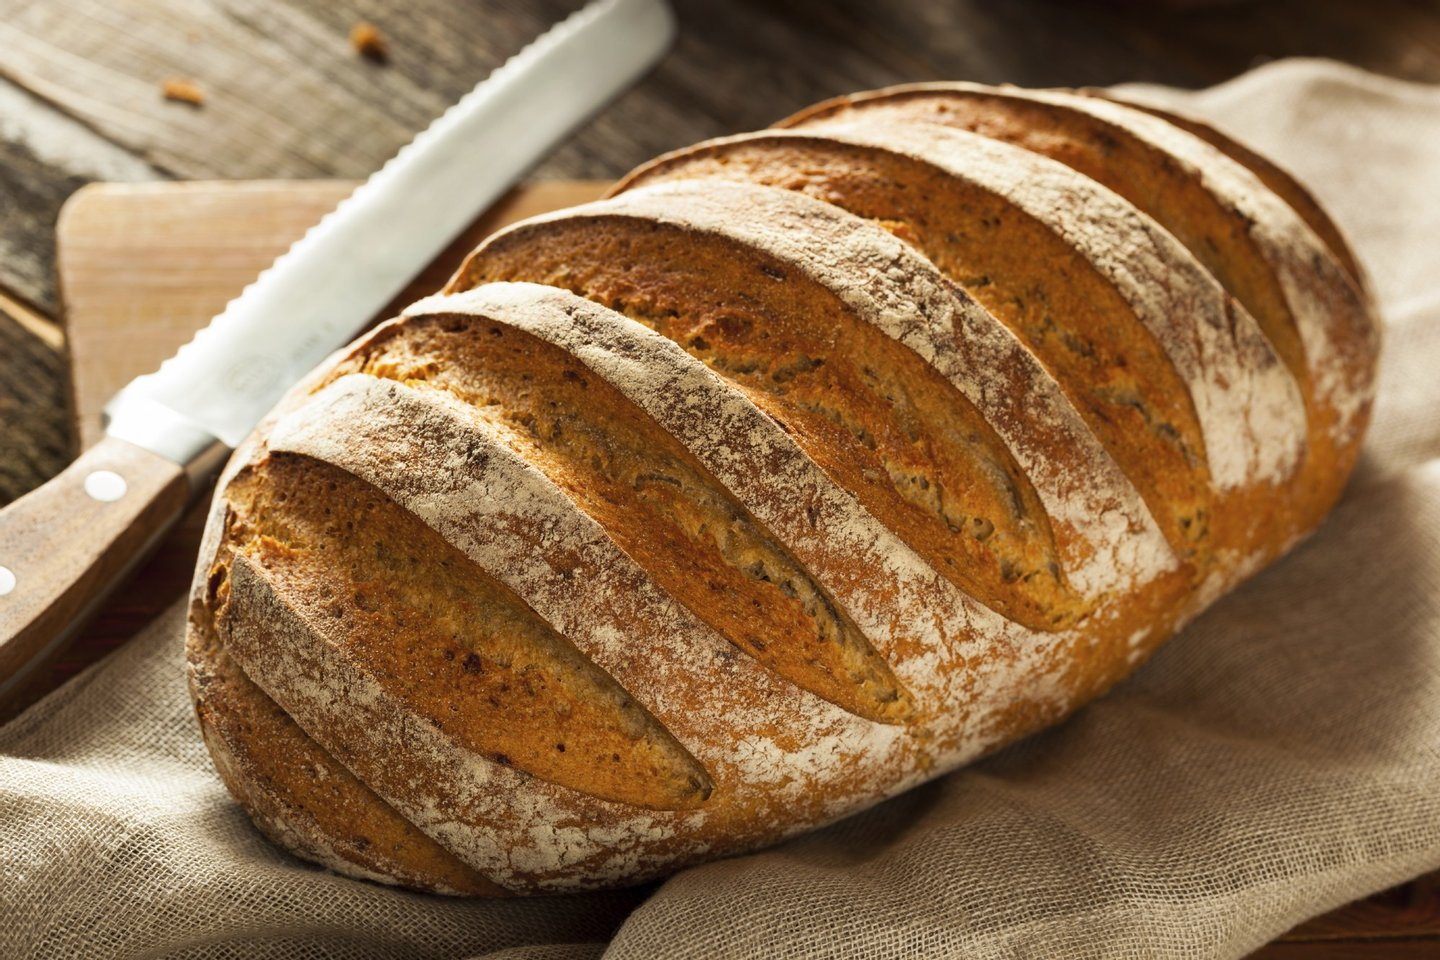 baguette, baked, bakery, baking, barley, bread, breakfast, brown, cereal, crumb, crust, crusty, cut, cutting, delicious, diet, food, french, fresh, freshness, gourmet, grain, health, healthy, heap, ingredient, loaf, meal, natural, nutrition, oat, organic, pastry, portion, round, rural, rustic, rye, rye bread, seed, slice, sliced, snack, tasty, texture, toast, traditional, wheat, whole,